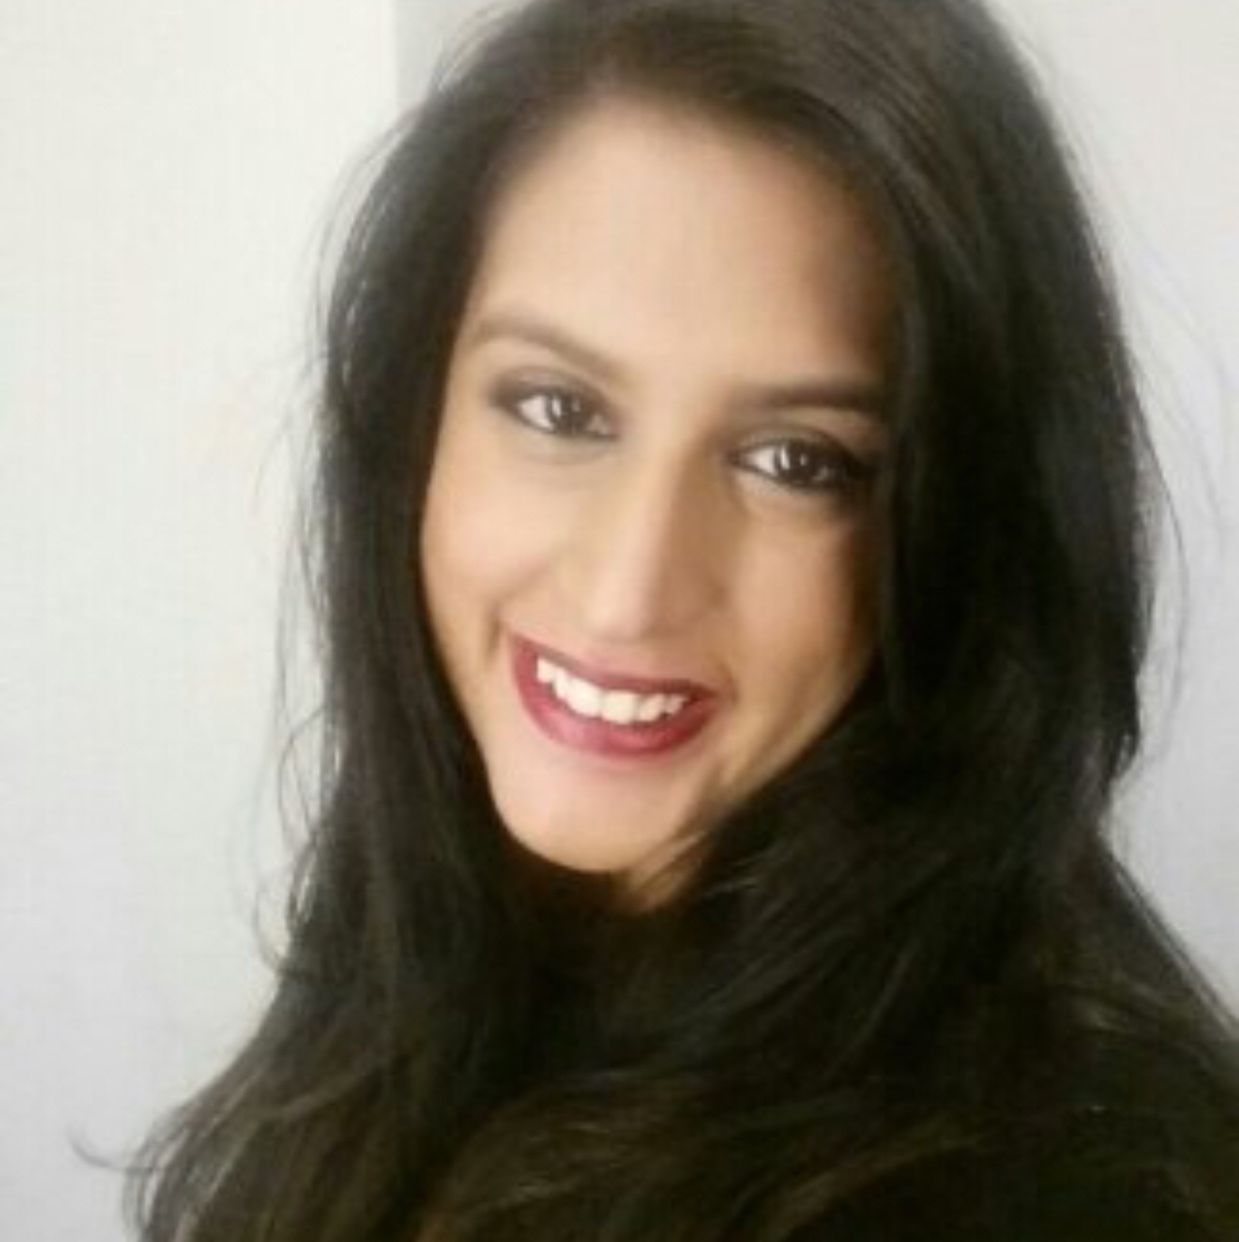 hindu singles in dallas county Looking for indian women or indian men in dallas, tx local indian dating  service at idating4youcom find indian singles in dallas register now, use it  for.